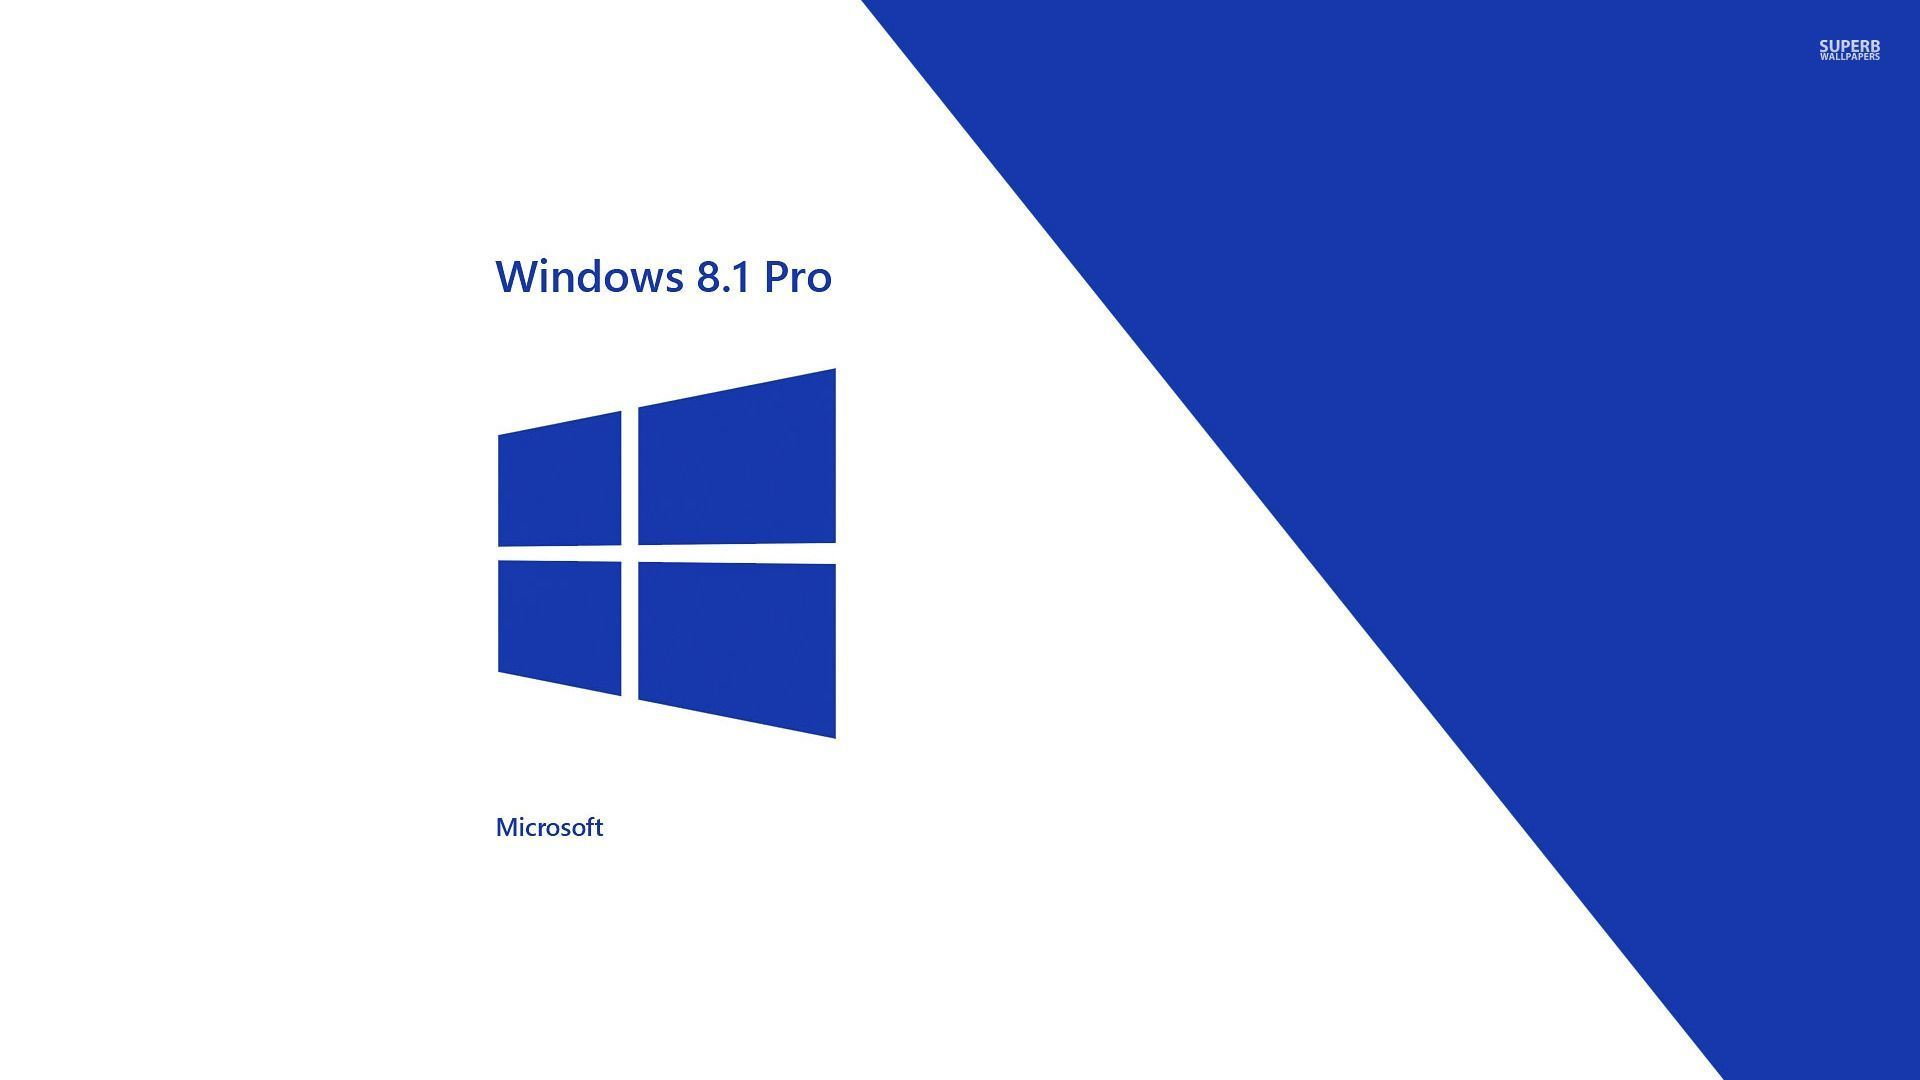 Windows Wallpapers For Free Download Windows Full Hd 4k 4k Windows Wallpaper Laptop Wallpaper Desktop Wallpapers Desktop Wallpapers Backgrounds